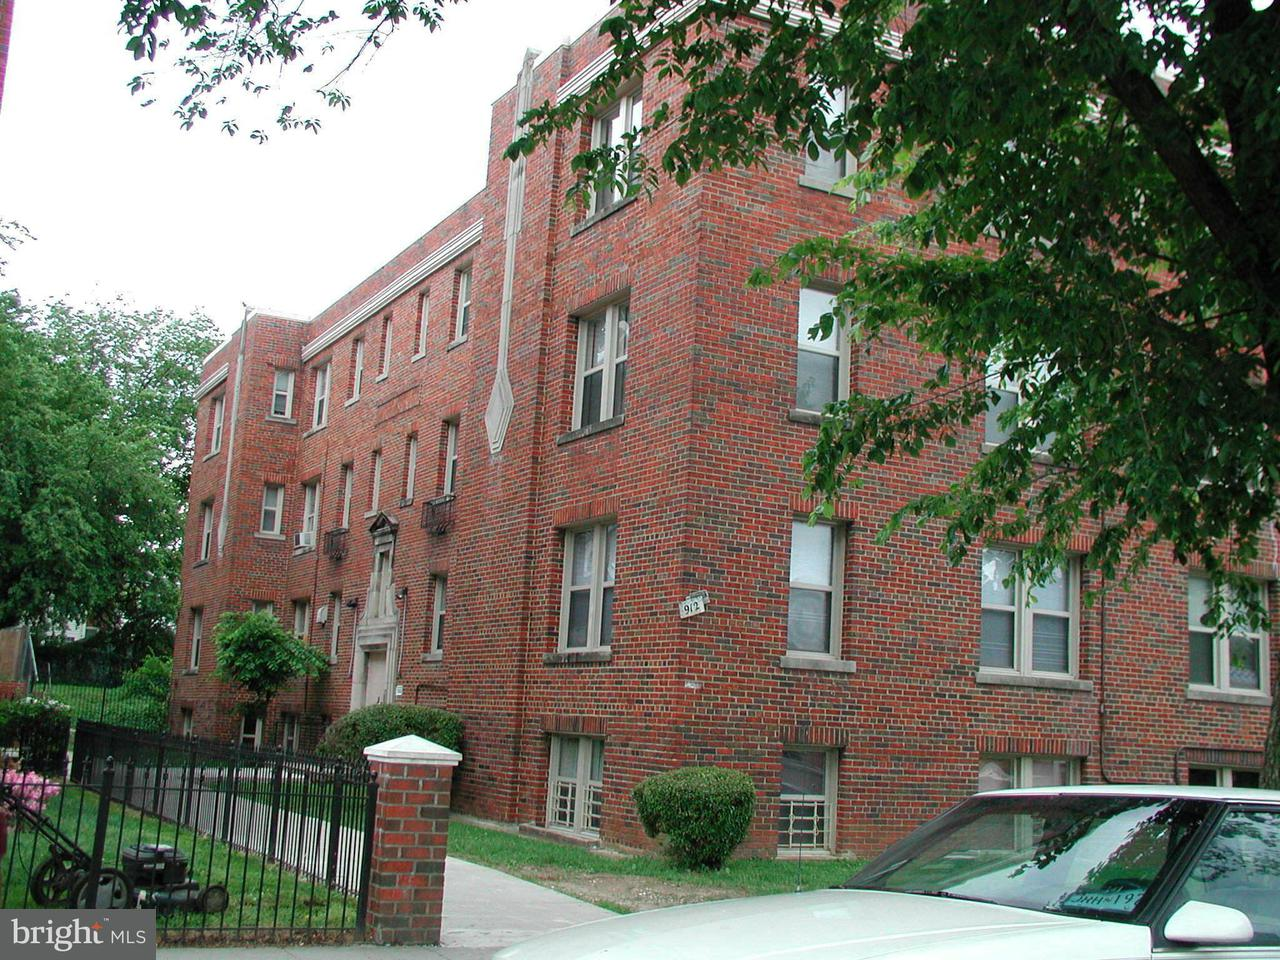 Multi-Family Home for Sale at 912 GALLATIN ST NW 912 GALLATIN ST NW Washington, District Of Columbia 20011 United States